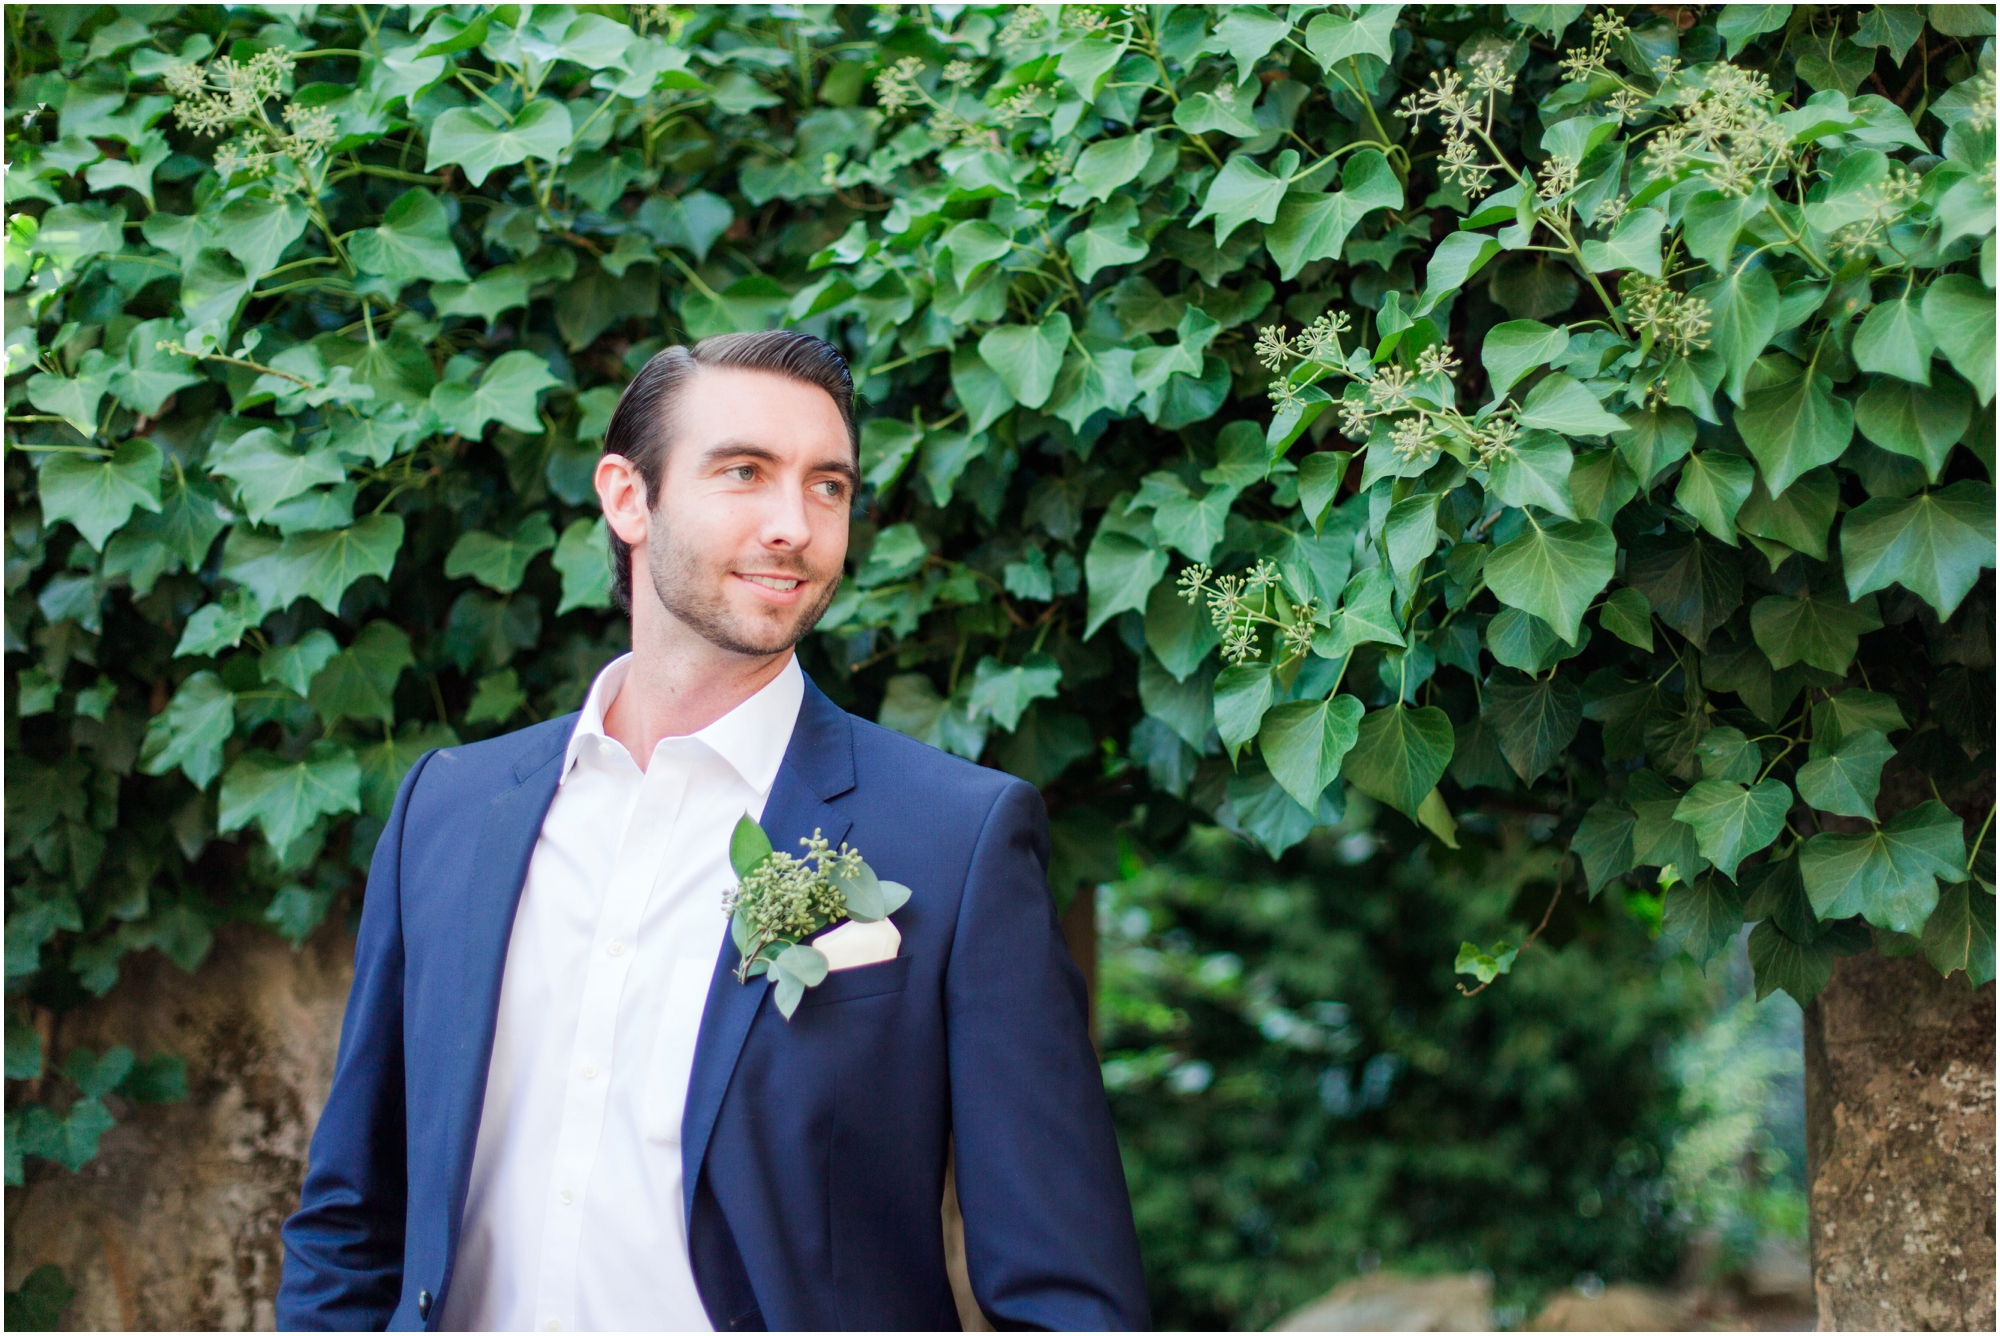 Saratoga+Springs+wedding+pictures+by+Briana+Calderon+Photography_0357.jpg